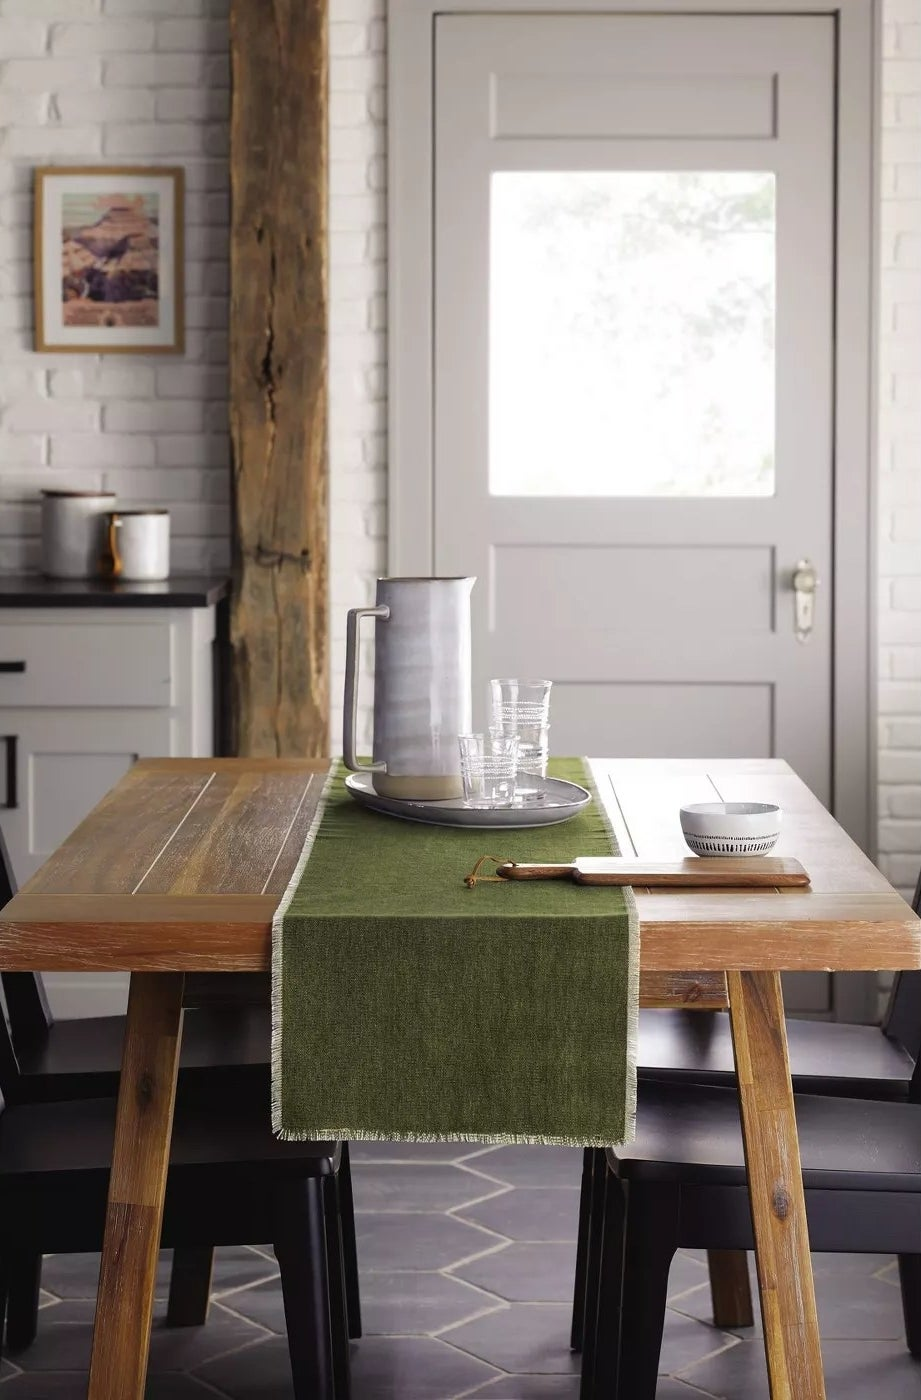 A farmhouse-style dining room table with a rustic finish